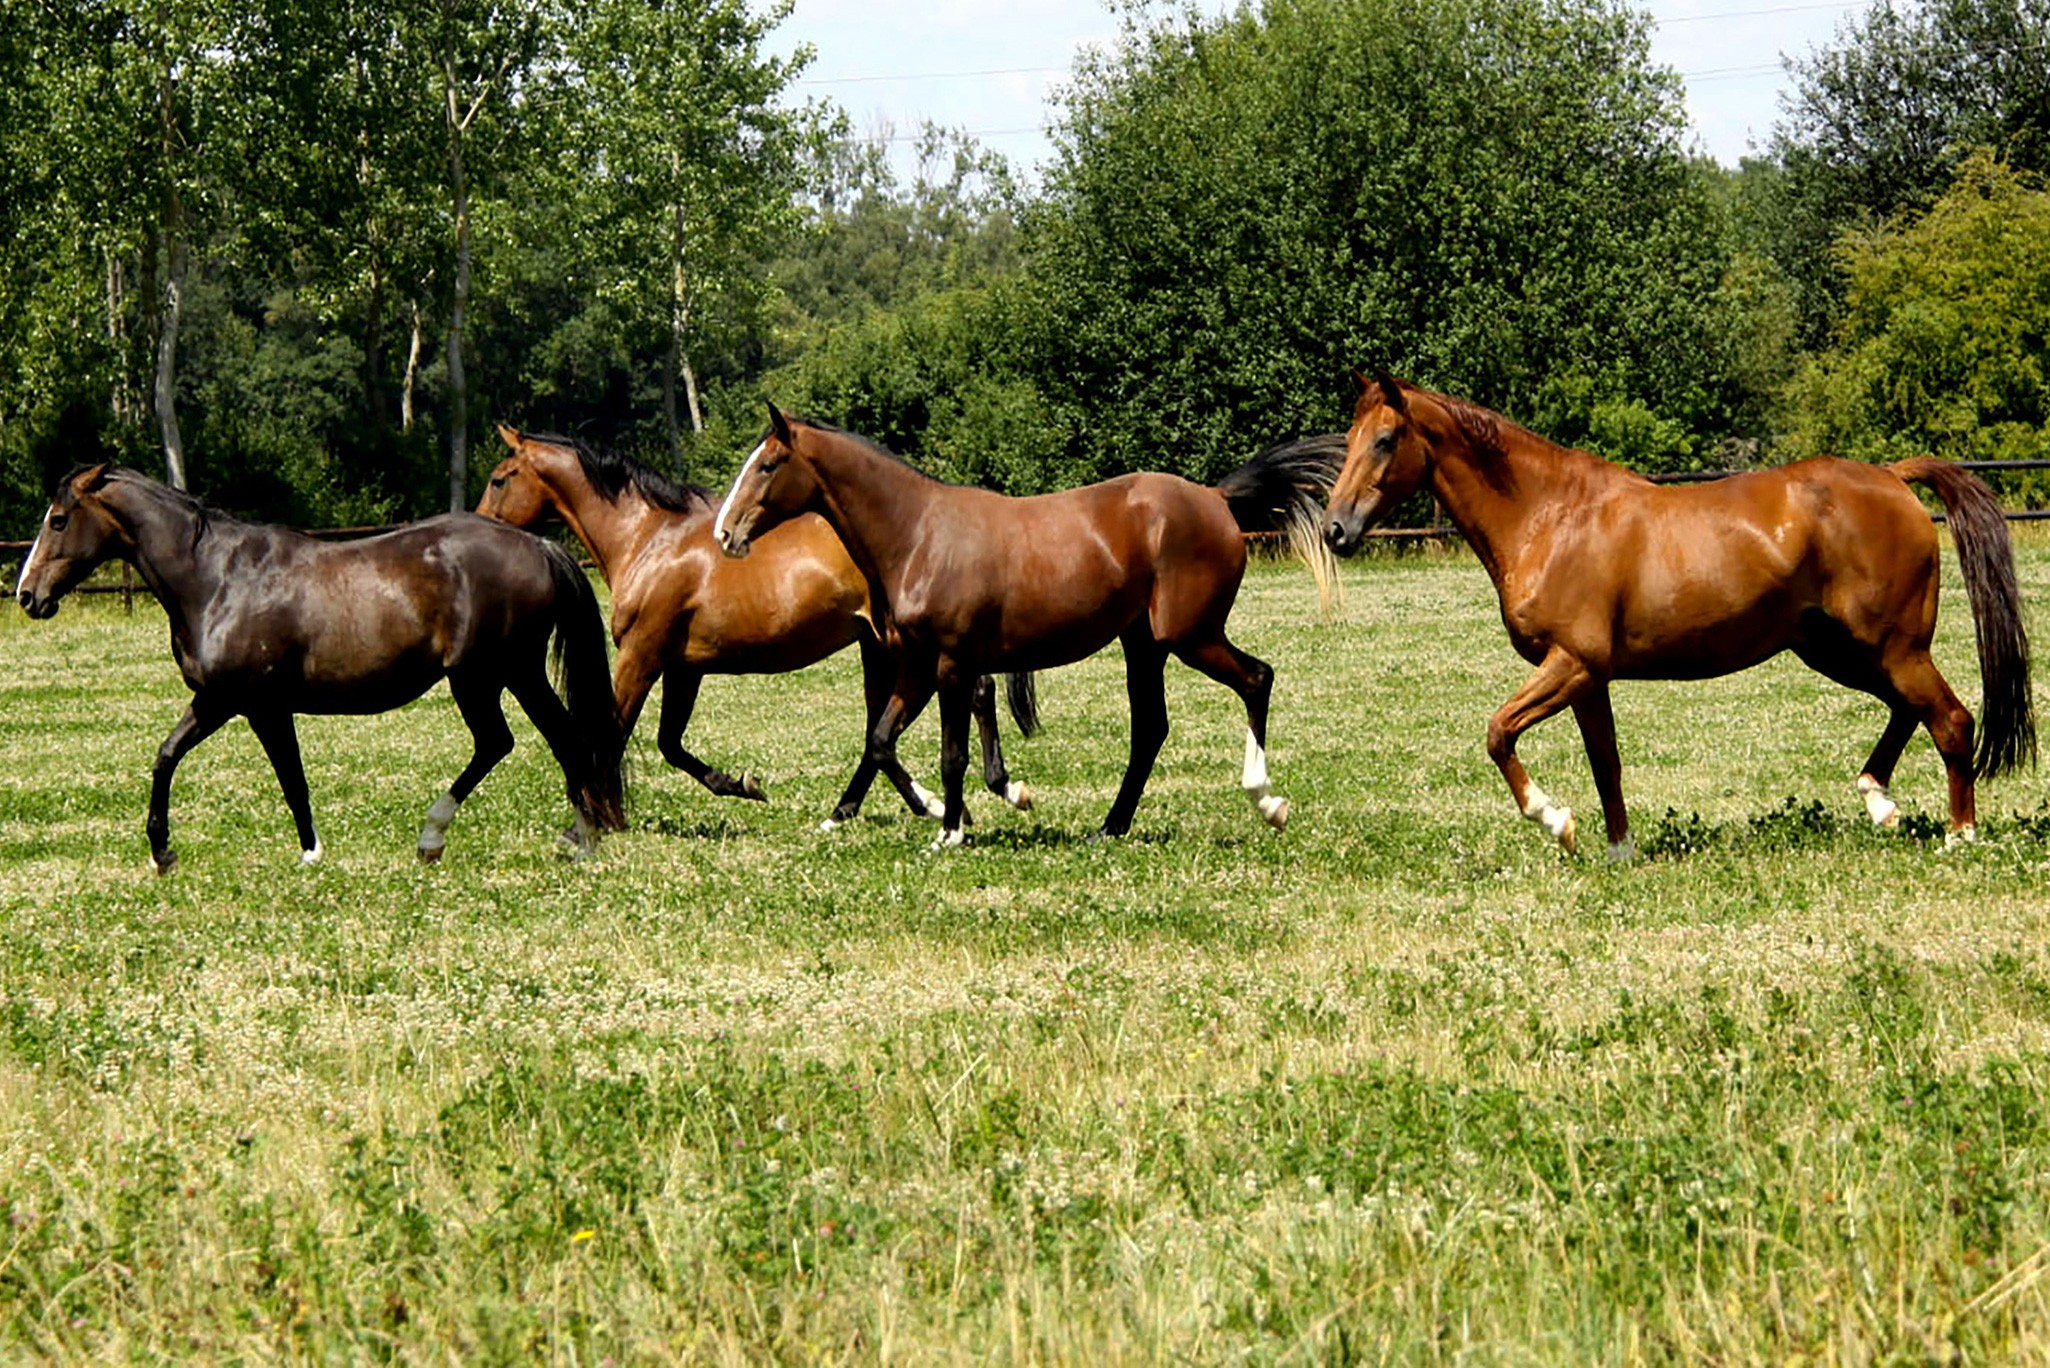 Chevaux - Equibiome